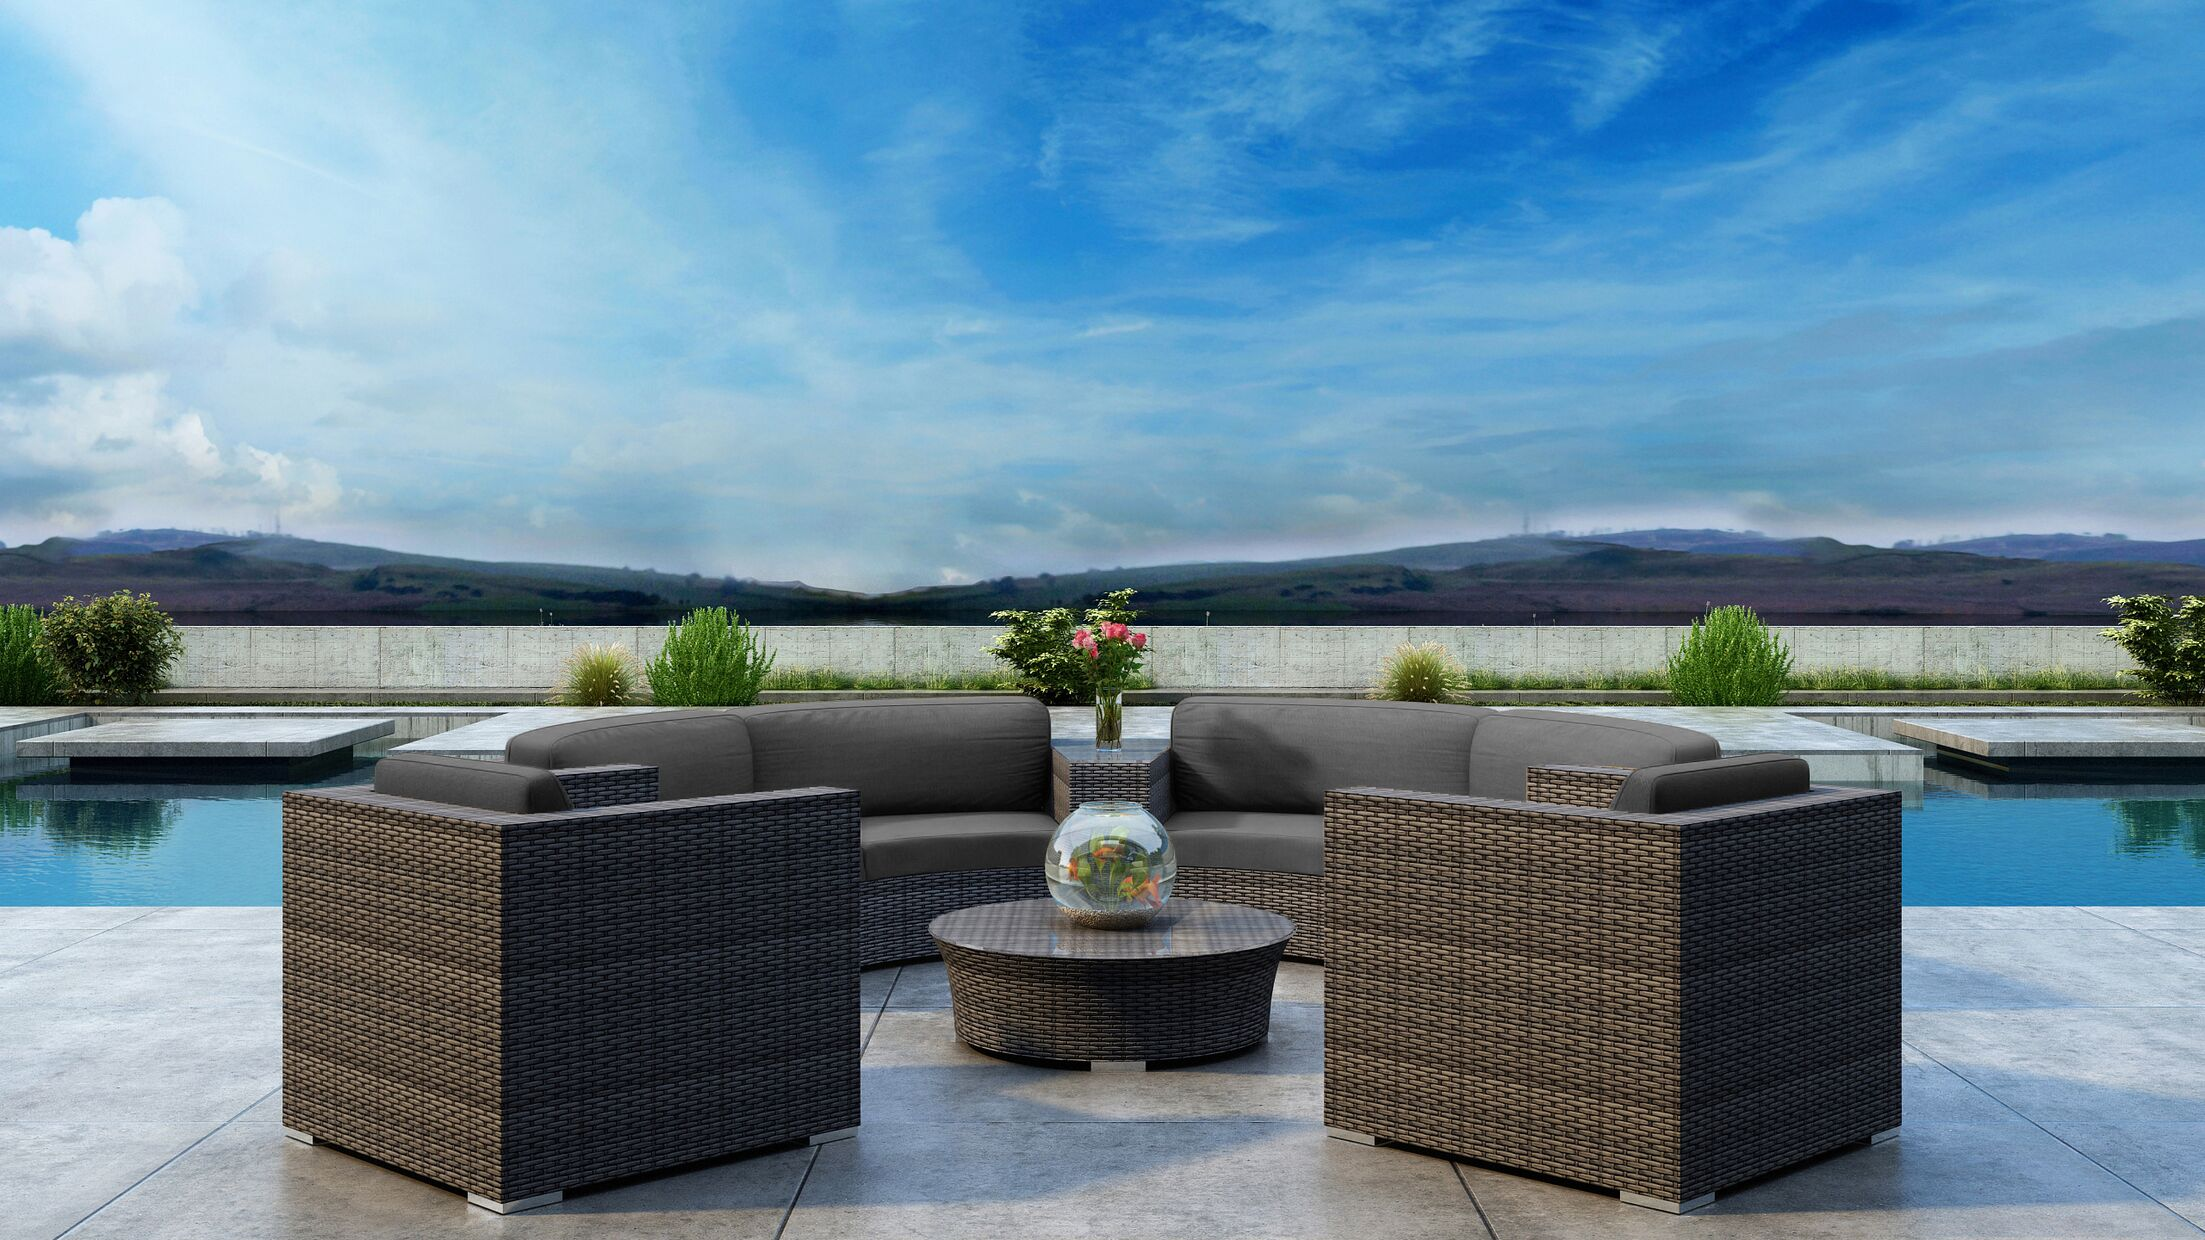 Gilleland 6 Piece Sectional Set with Sunbrella Cushion Cushion Color: Canvas Charcoal